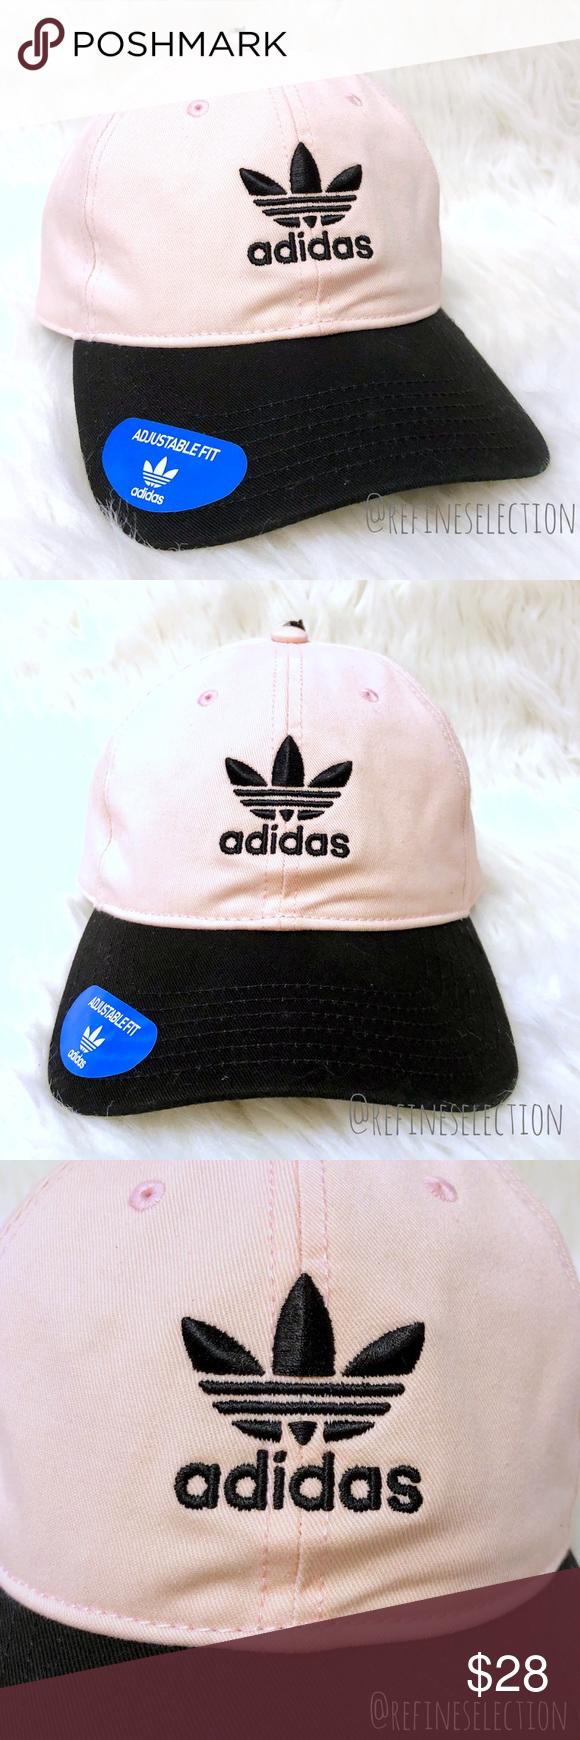 3a4a69e486b adidas Trefoil Pink And White Strapback Dad Hat NWT in 2018